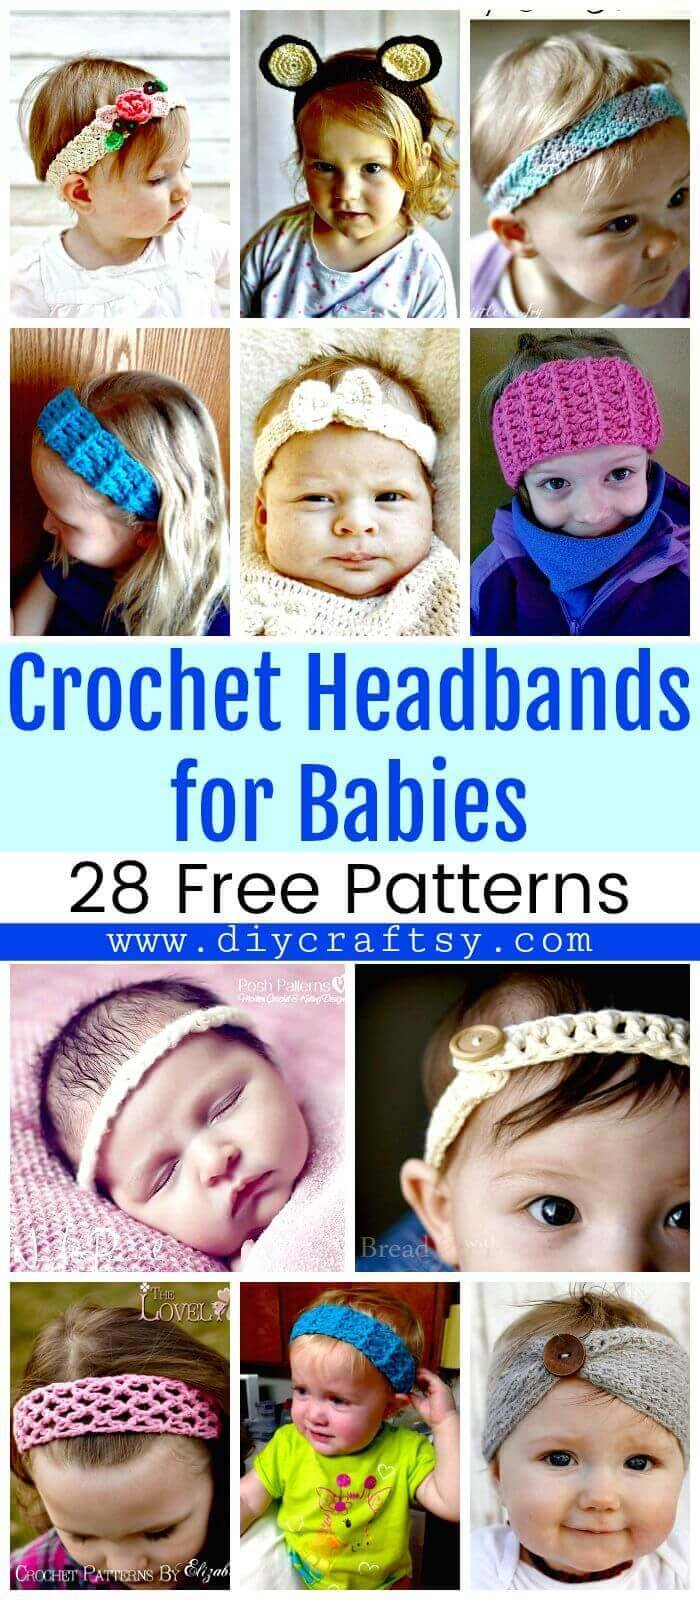 Crochet Headbands for Babies - 28 Free Patterns